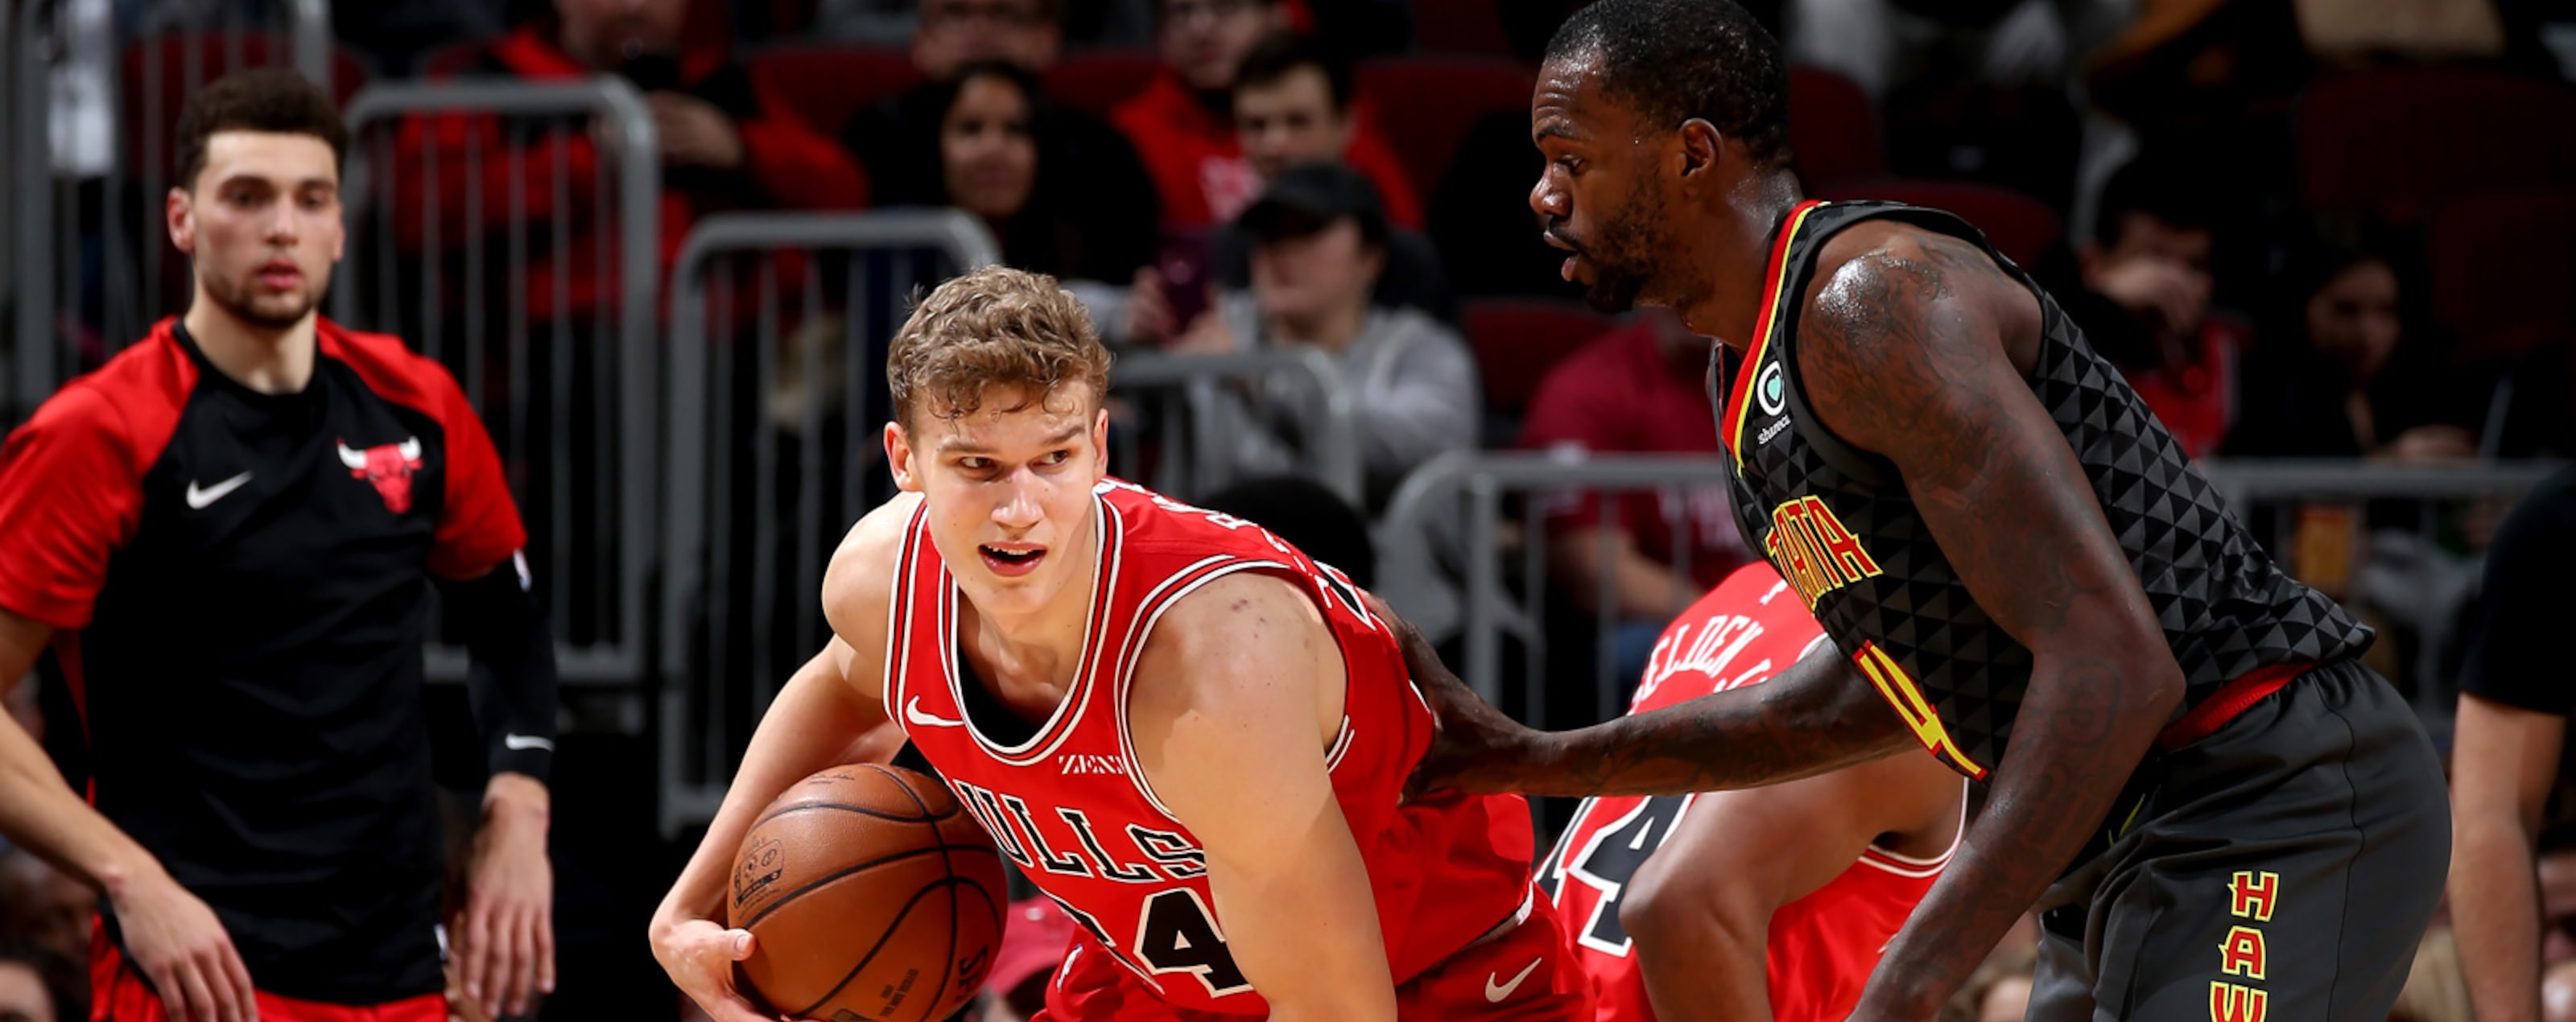 Lauri Markkanen #24 of the Chicago Bulls handles the ball against the Atlanta Hawks on January 23, 2019 at the United Center in Chicago, Illinois.